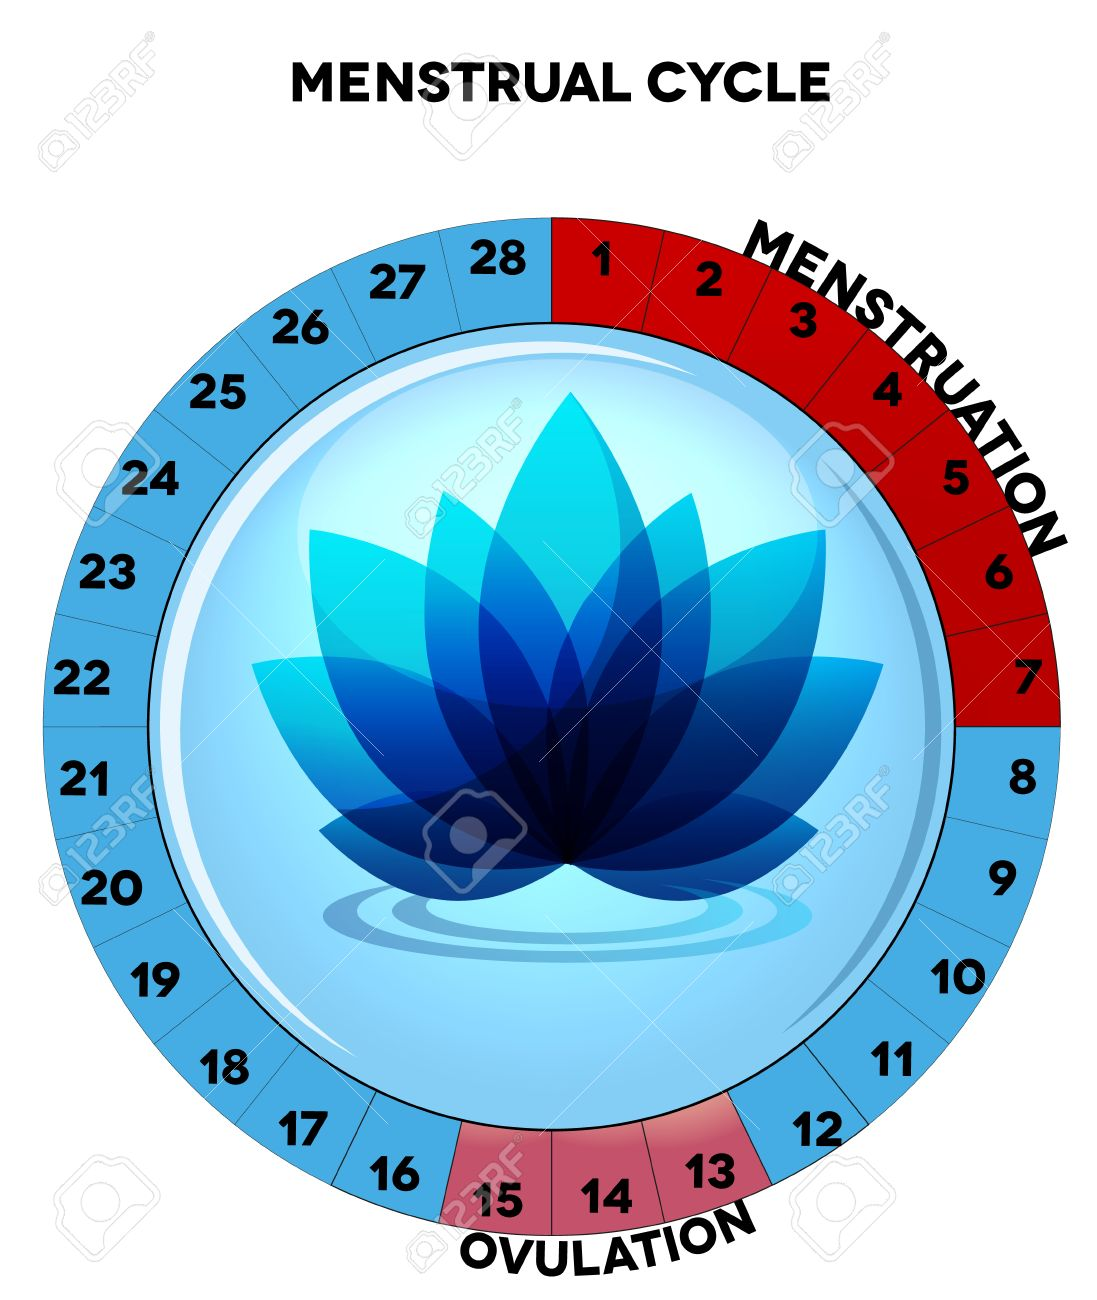 menstrual cycle chart, average twenty eight menstrual cycle days